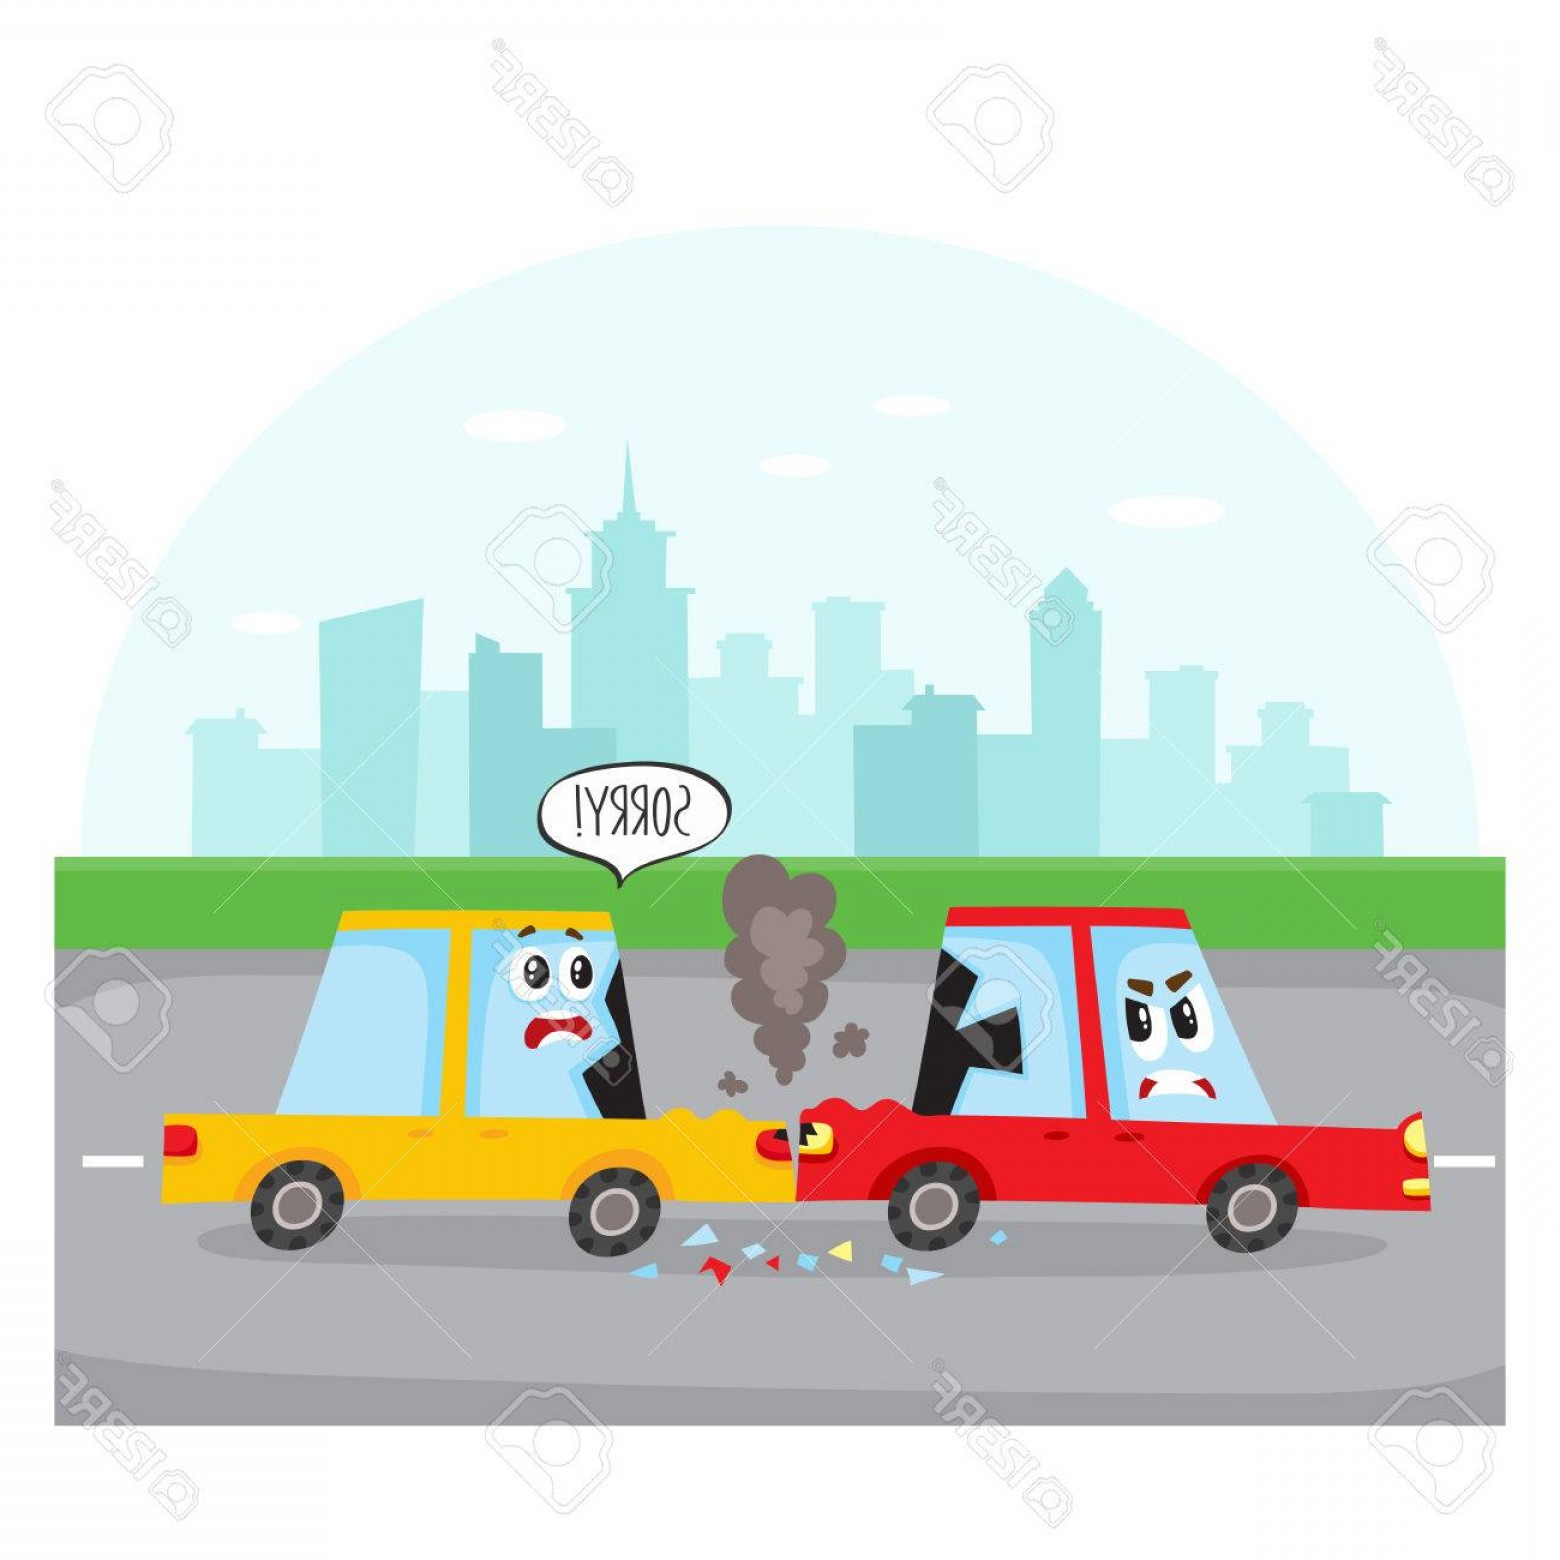 Face Side Pedestrian Vector: Photostock Vector Road Accident Rear End Collision On City Street With Car Characters Side View Cartoon Vector Illustr